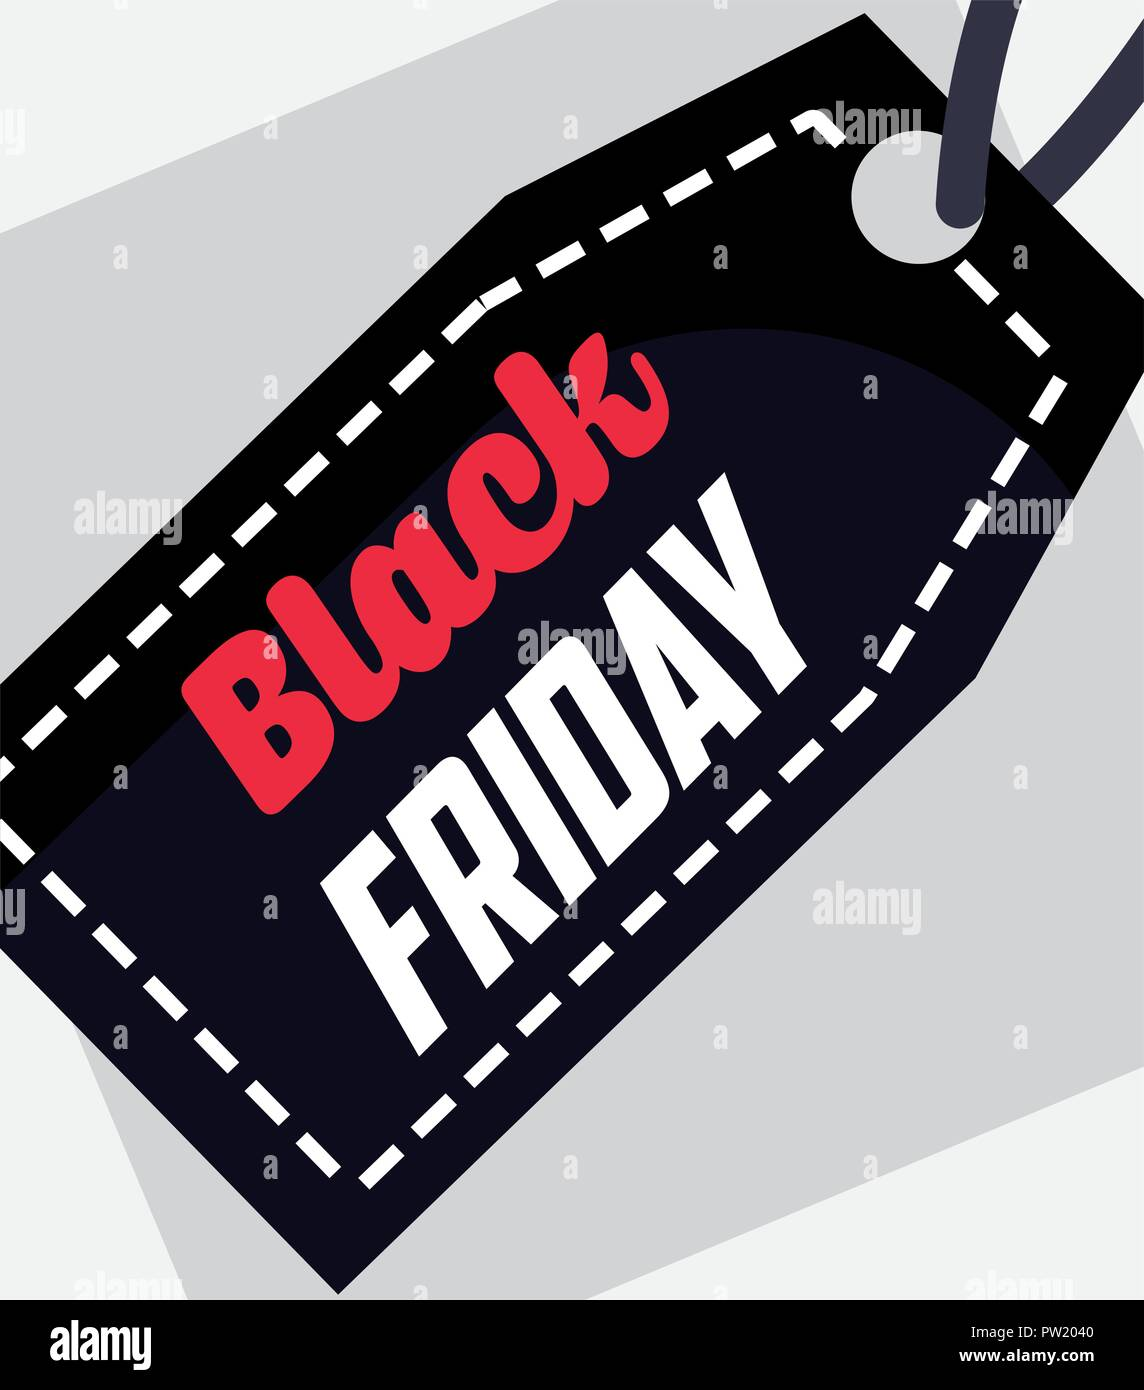 black friday shopping sales ticket clothe sign vector illustration - Stock Image